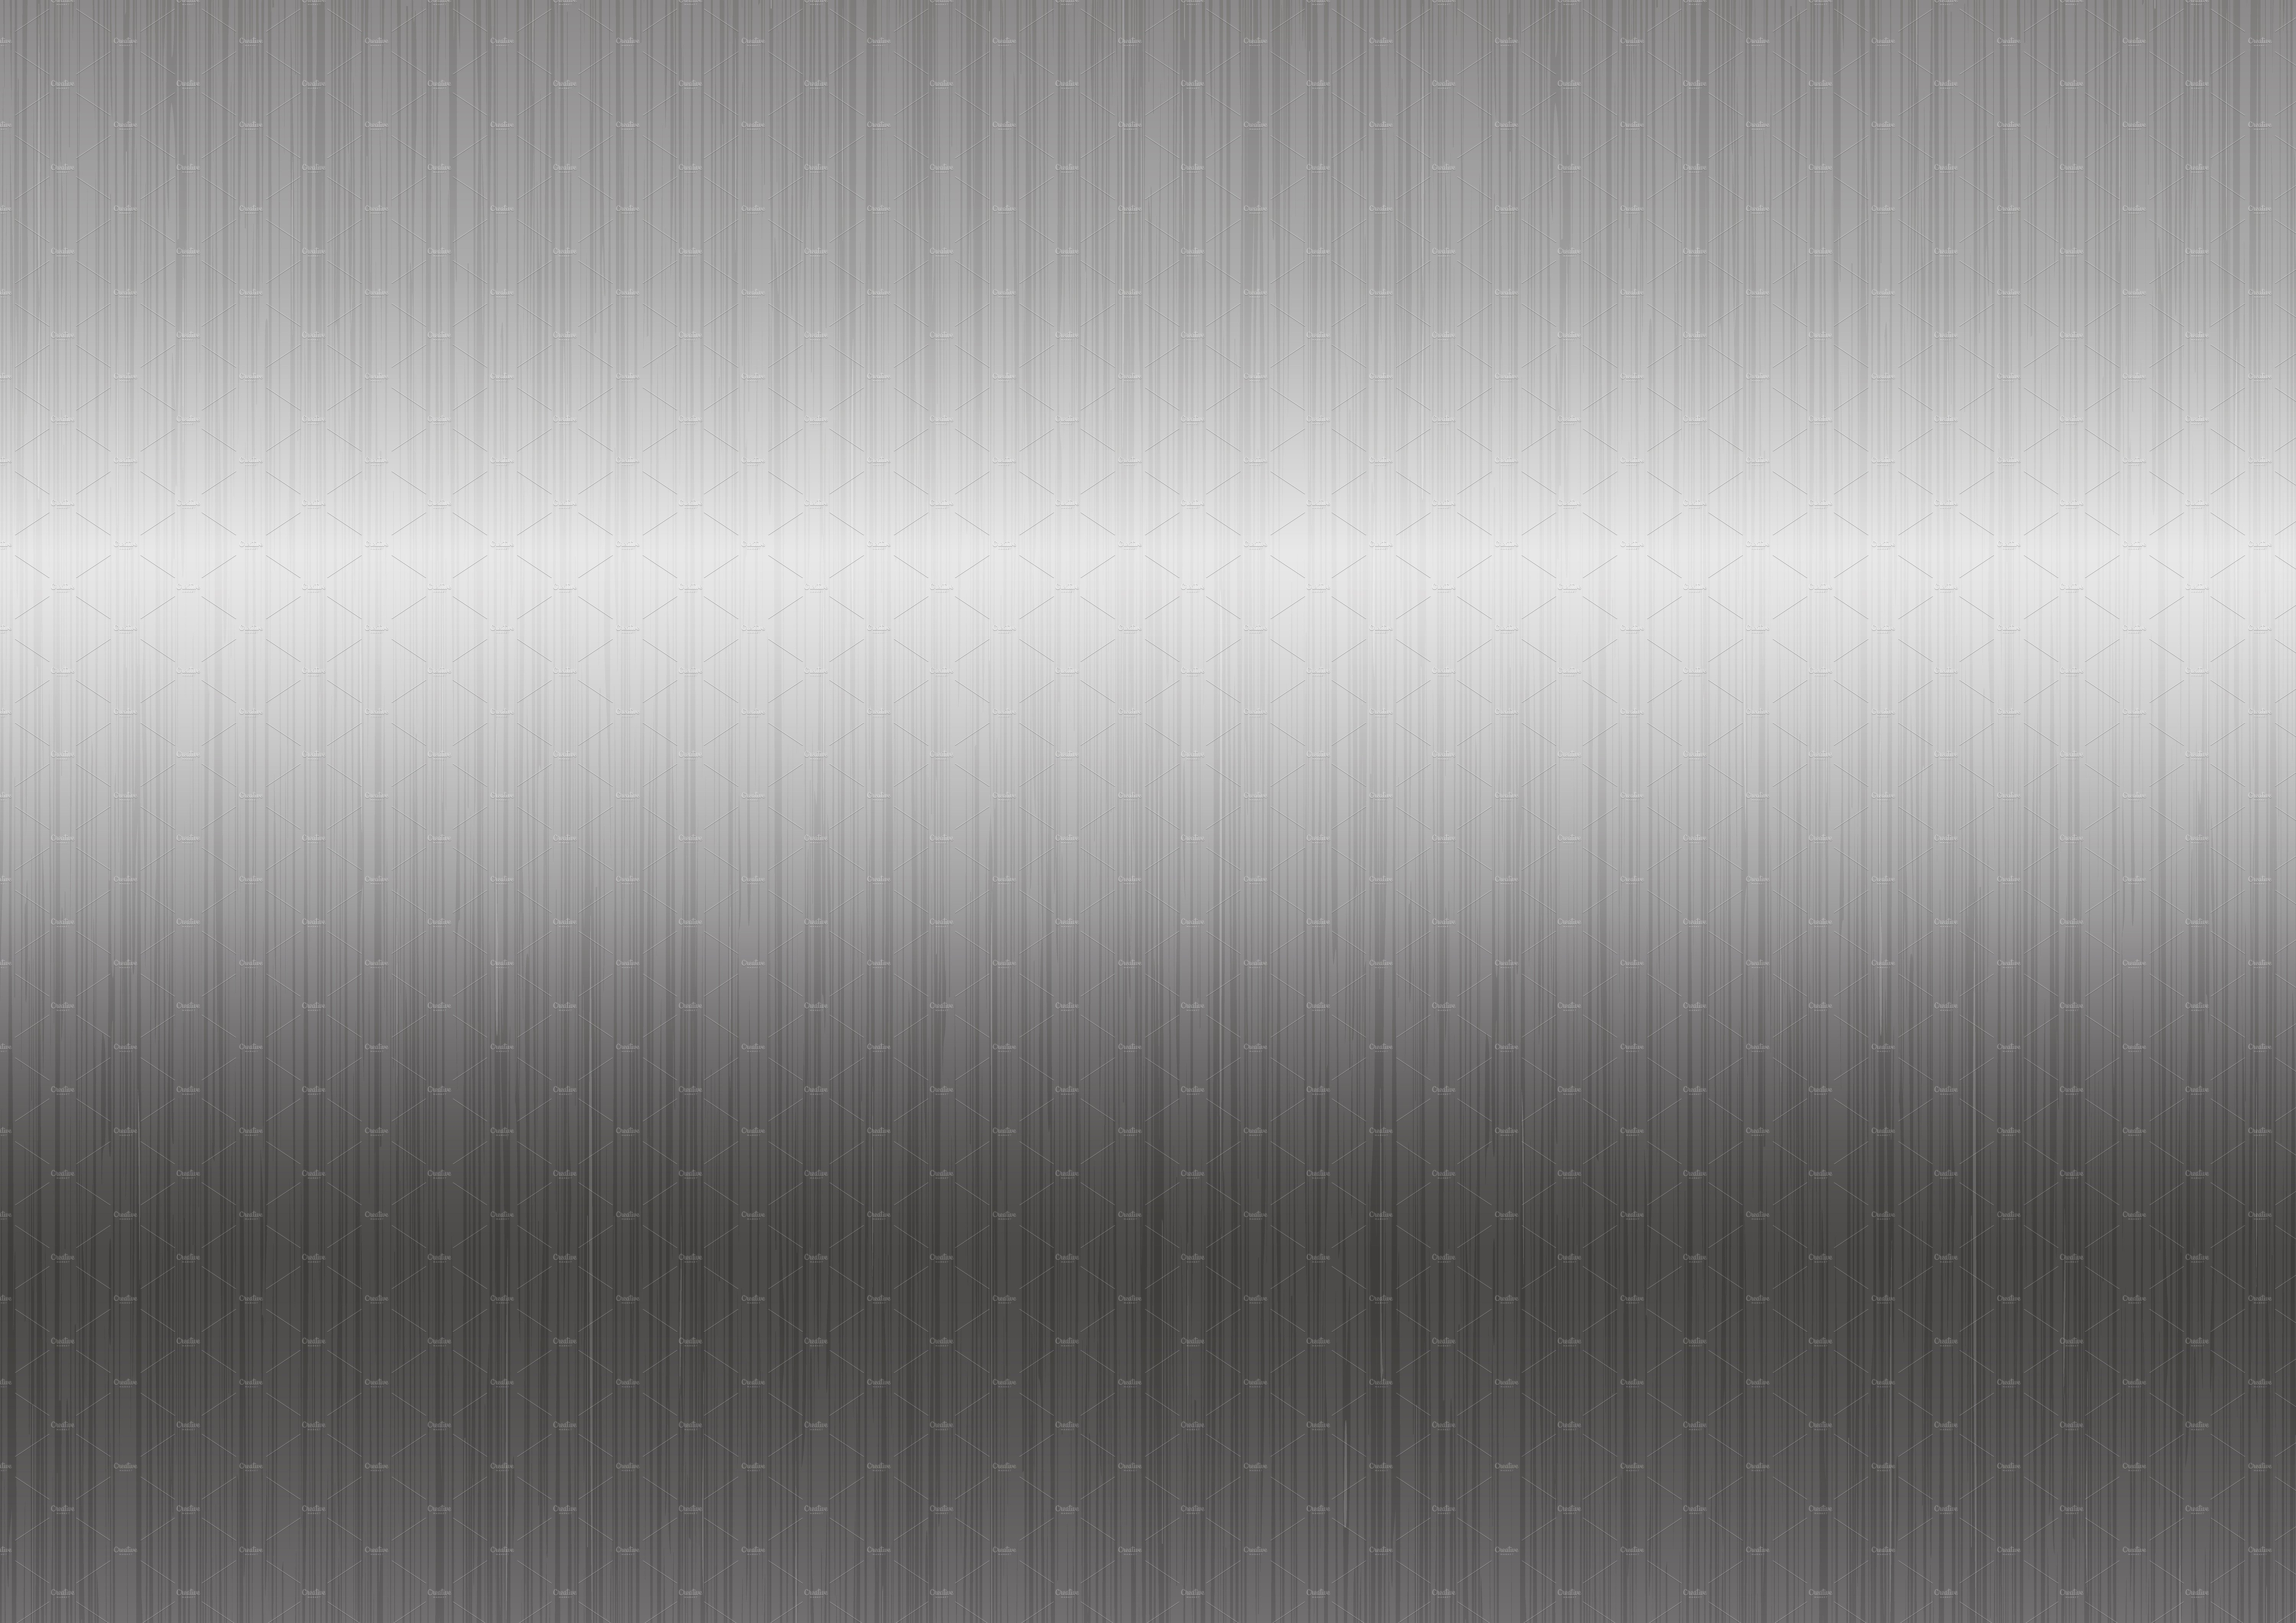 Metal texture background ~ Illustrations ~ Creative Market